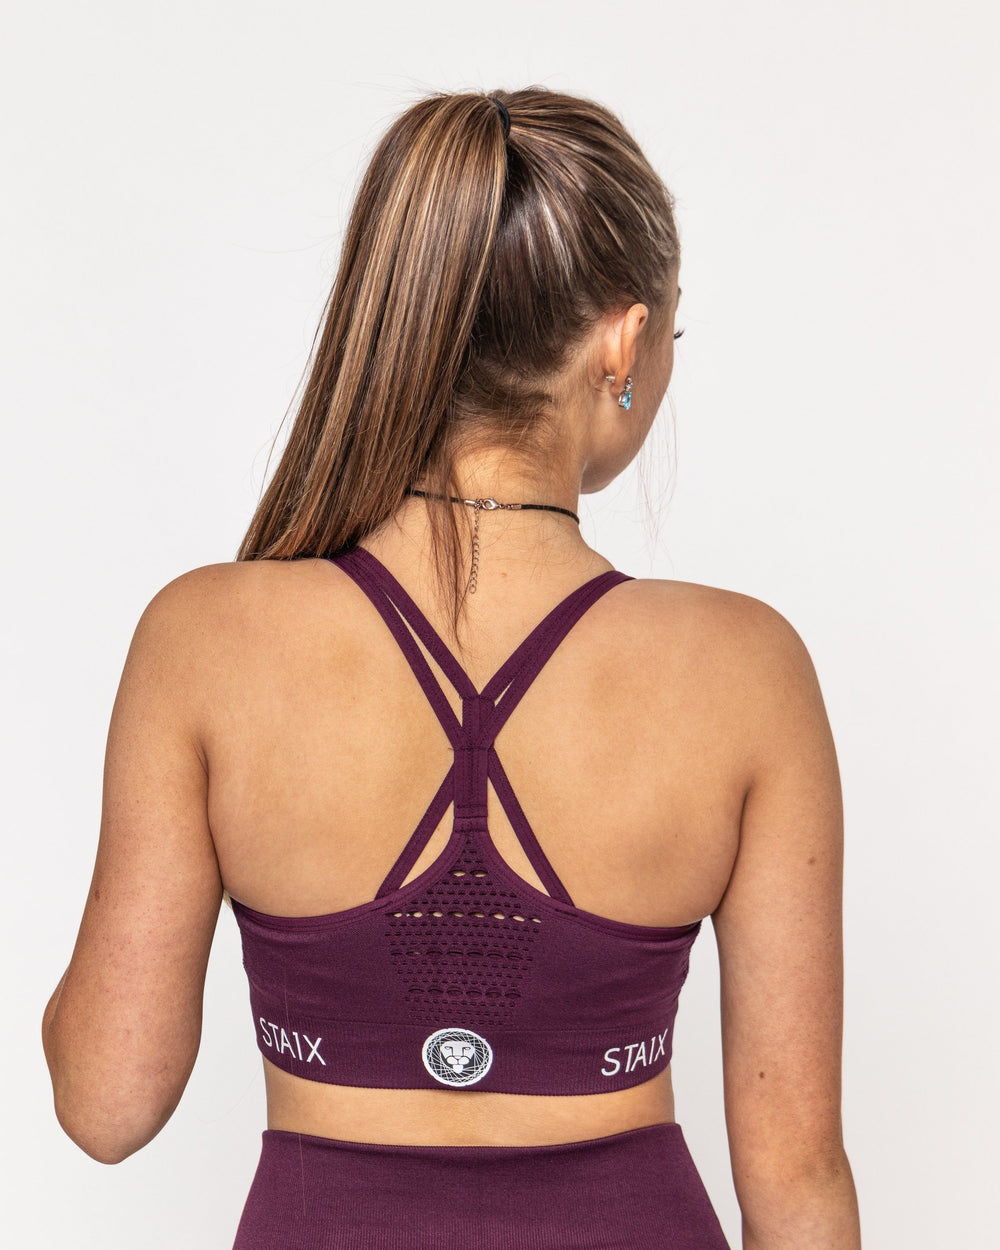 FORM SPORTS BRA STAIX